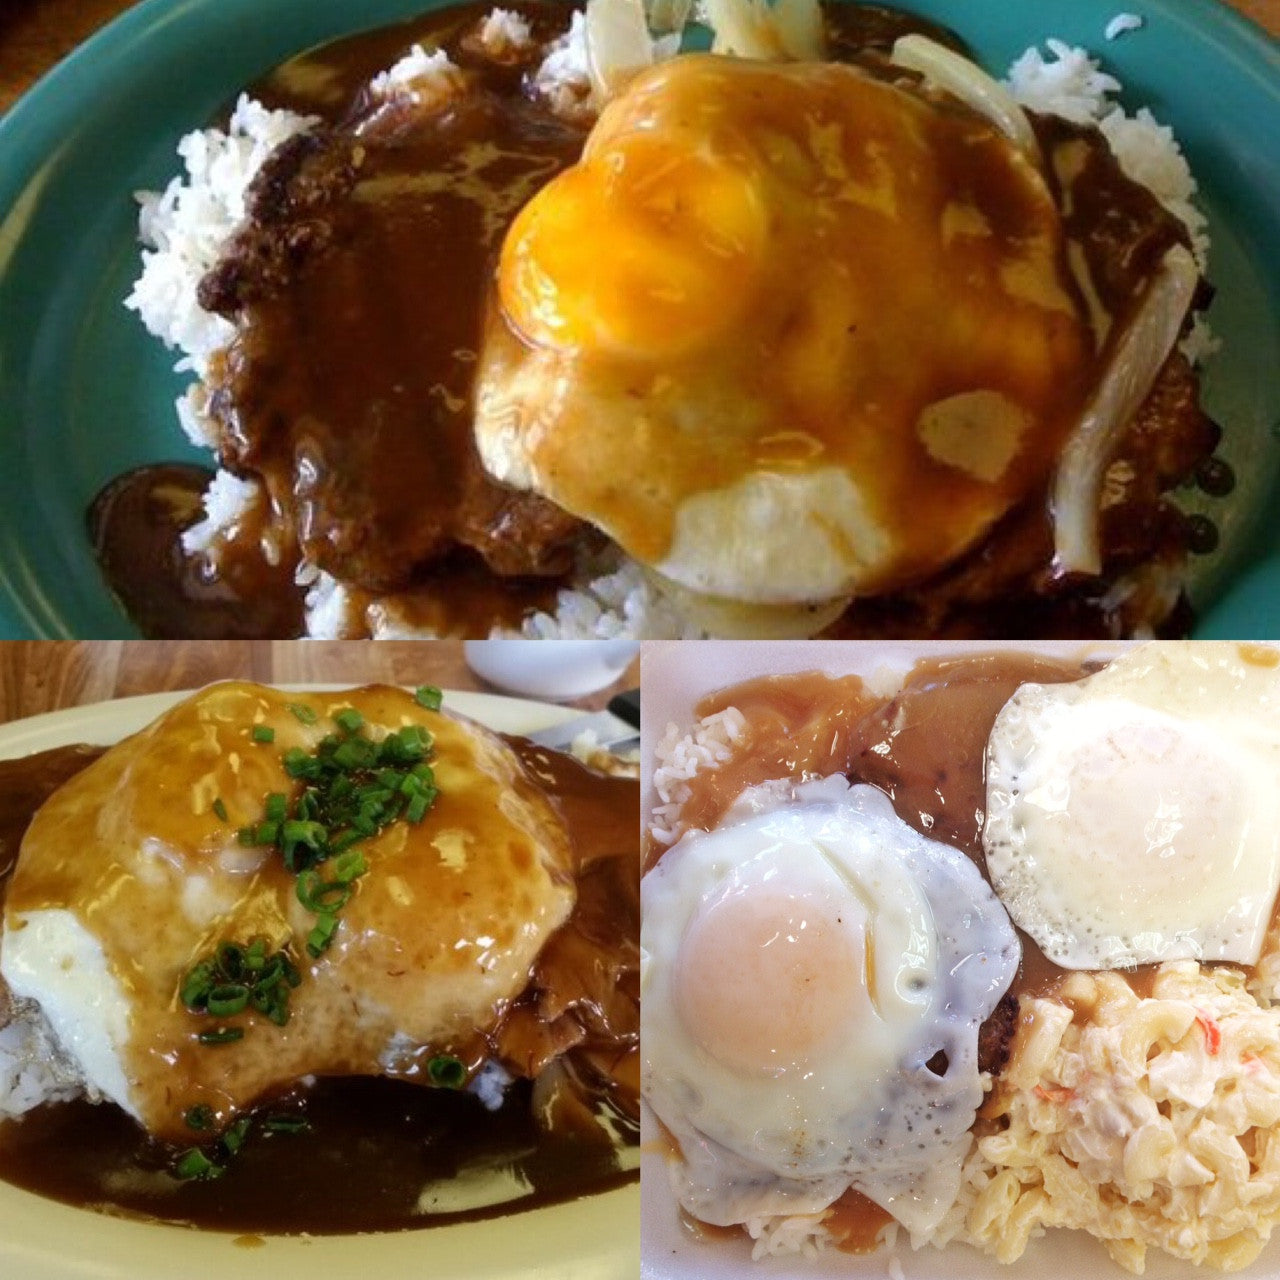 Hawaiian Loco Moco - The Crazy Booger